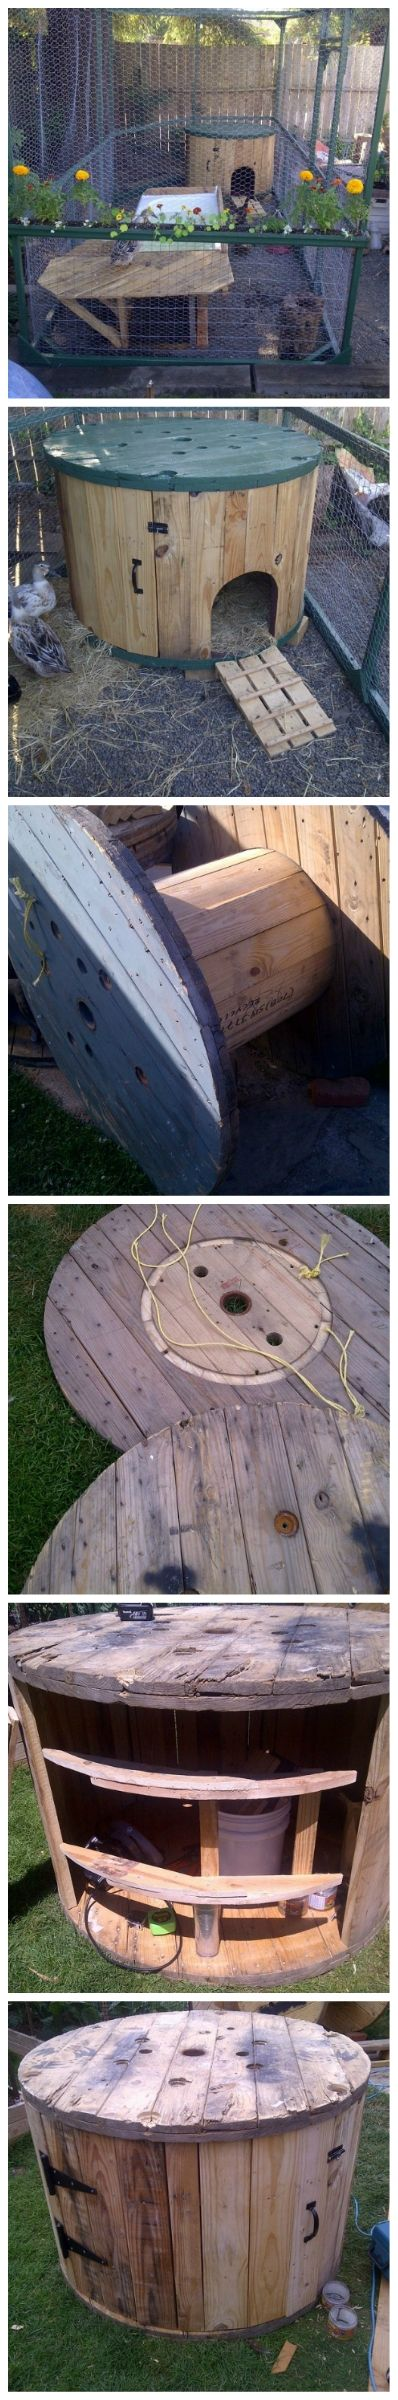 DIY Cable Spool Duck House